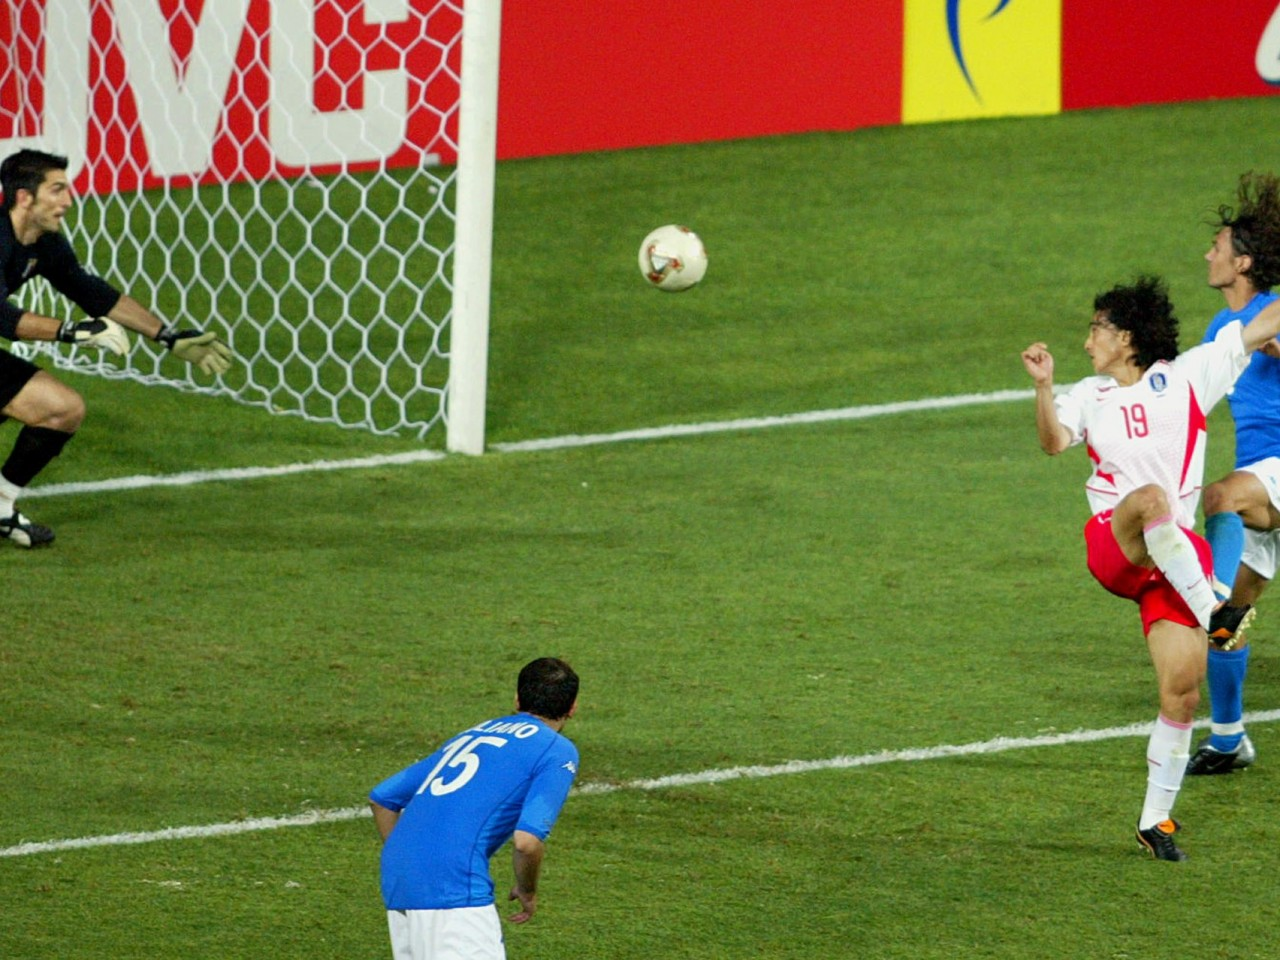 ON THIS DAY: Italy loses to South Korea in 2002